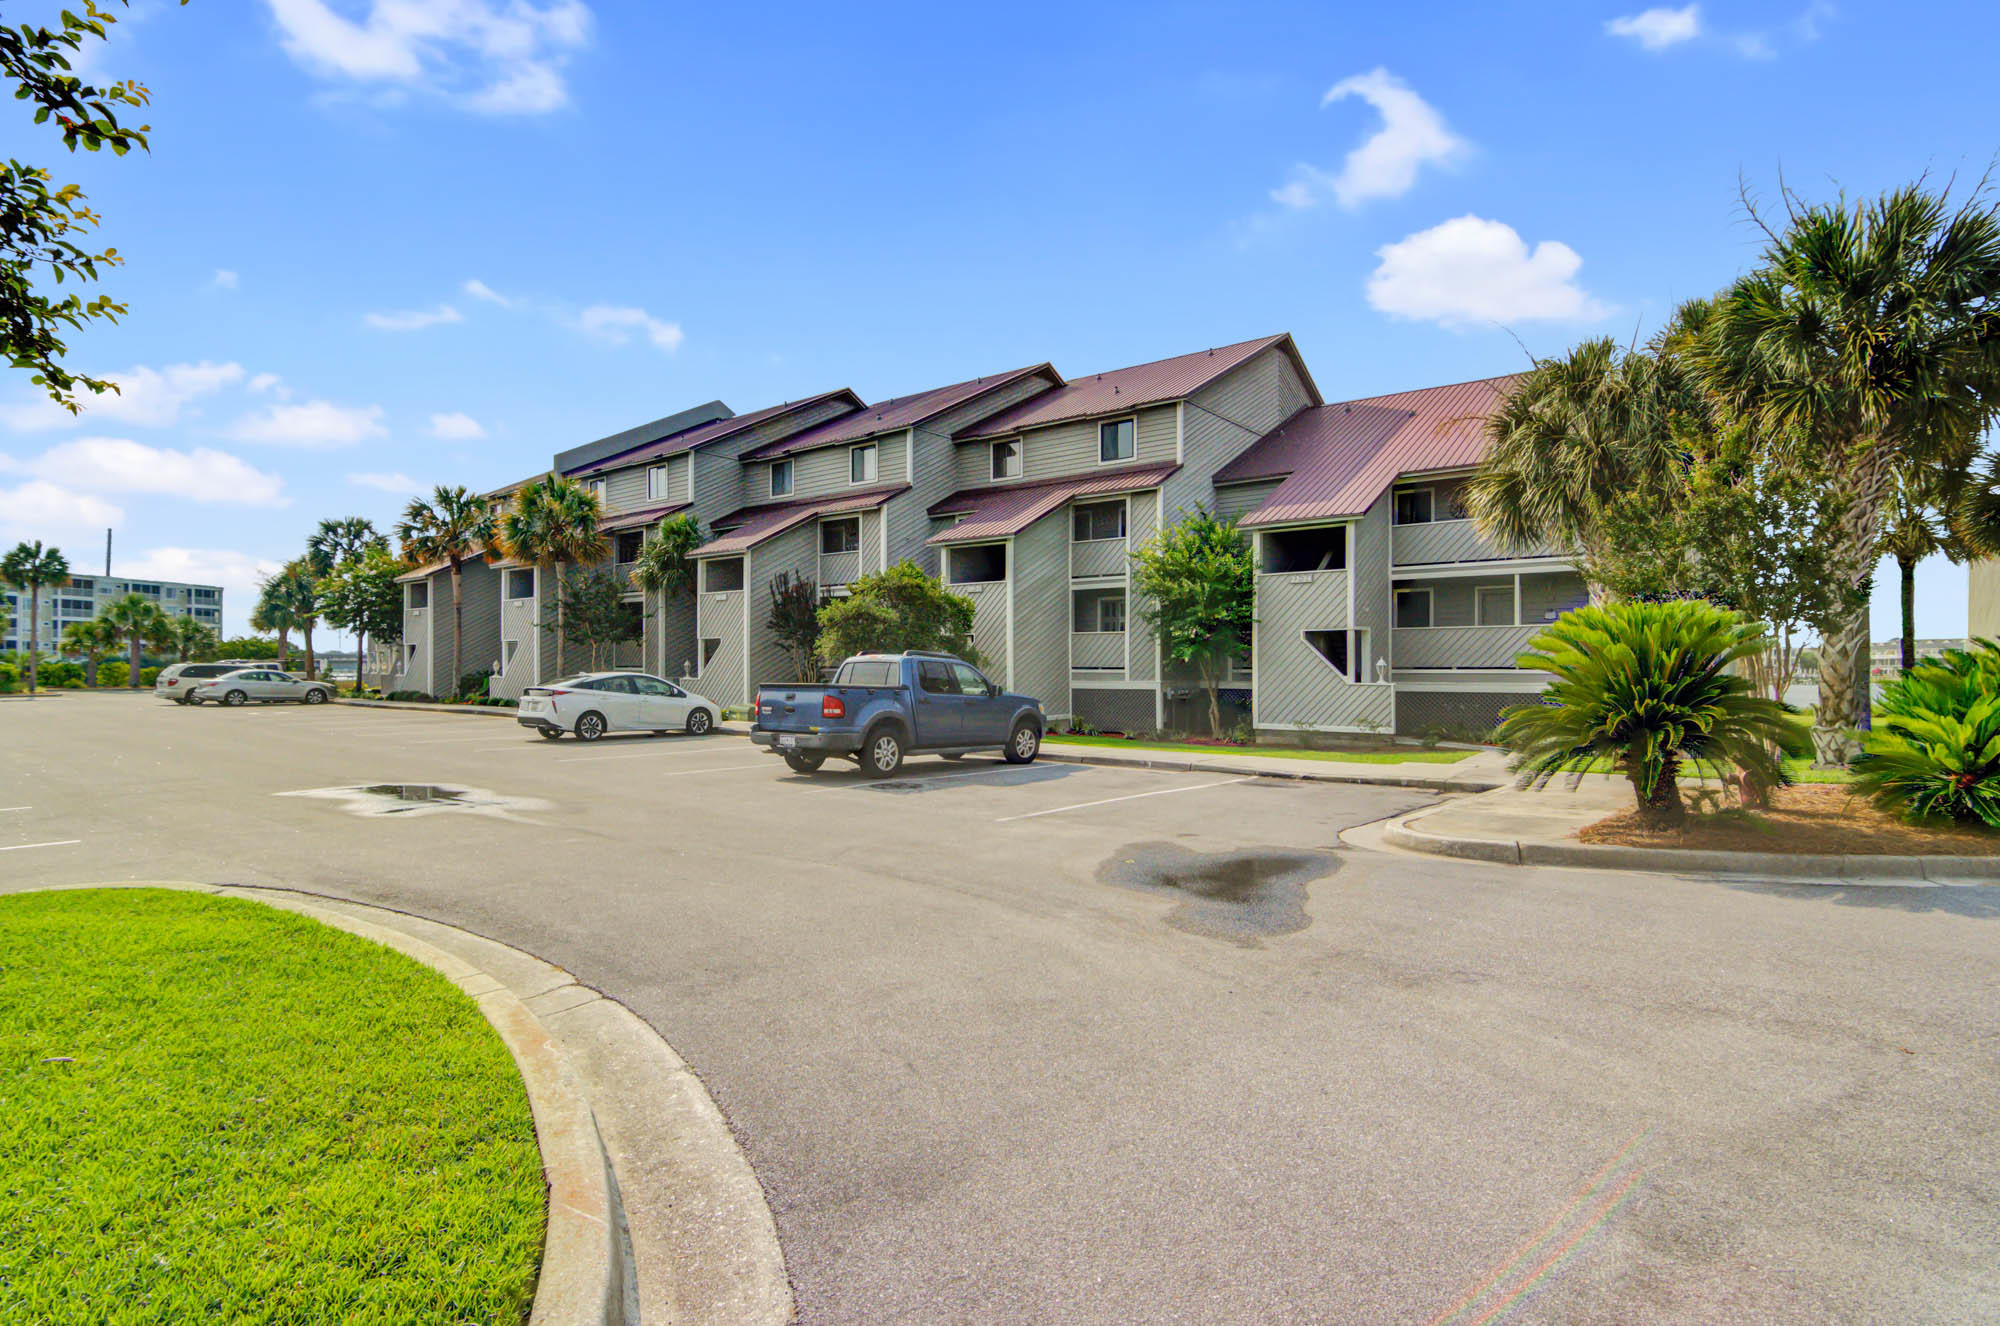 Mariners Cay Homes For Sale - 19 Mariners Cay, Folly Beach, SC - 1